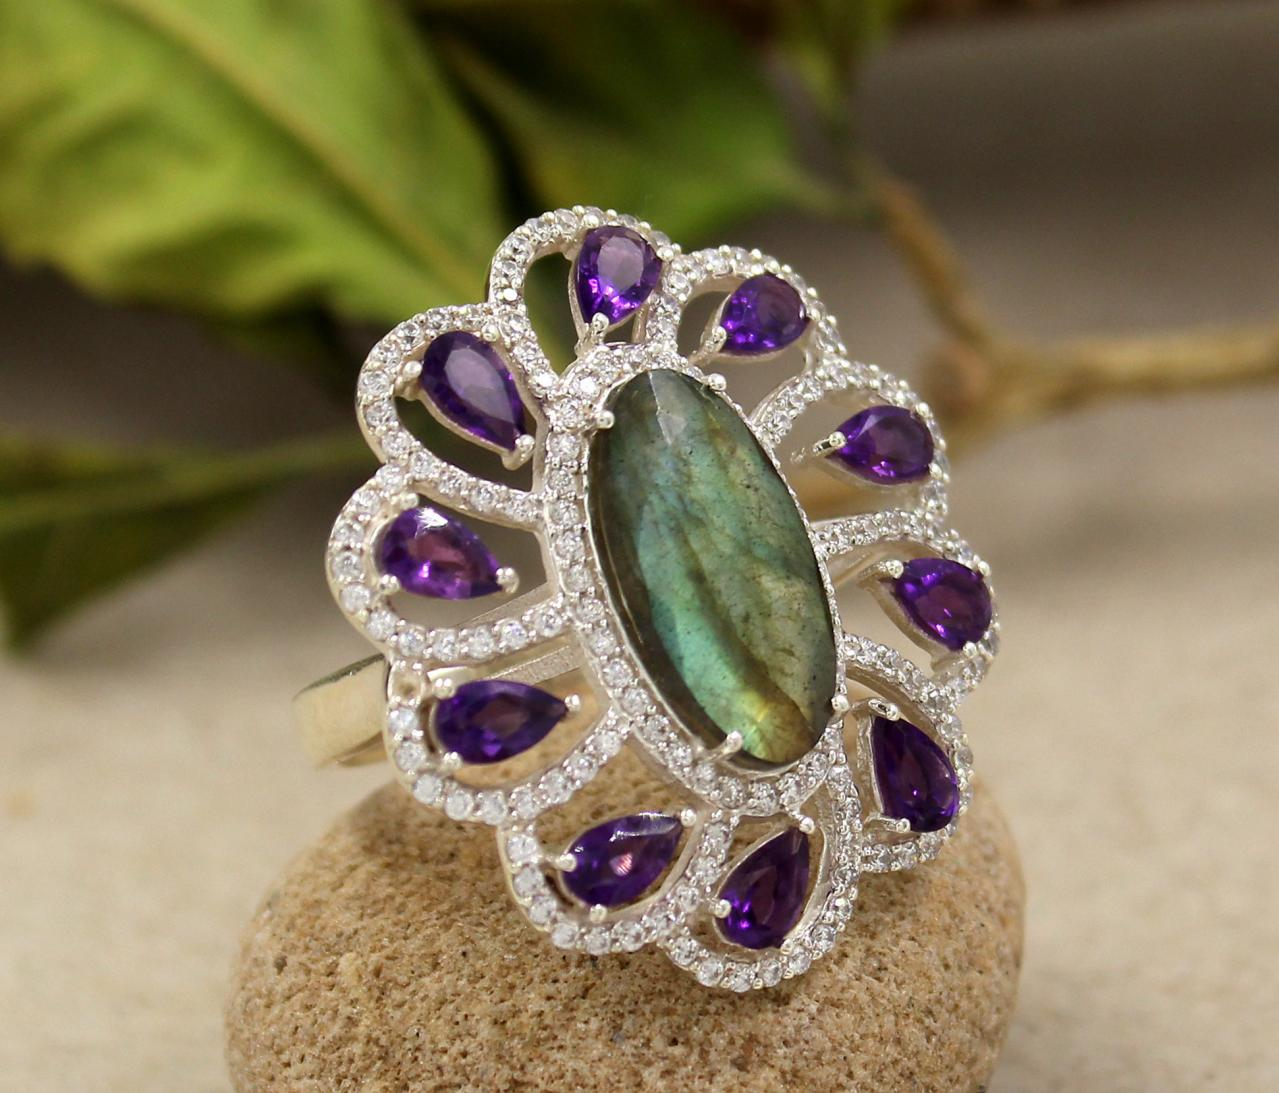 Magnificent Labradorite & Amethyst,CZ Ring,Statement Ring,Wedding Jewelry,Solid 925 Sterling Silver Jewelry,Anniversary Gift,Proposal Ring